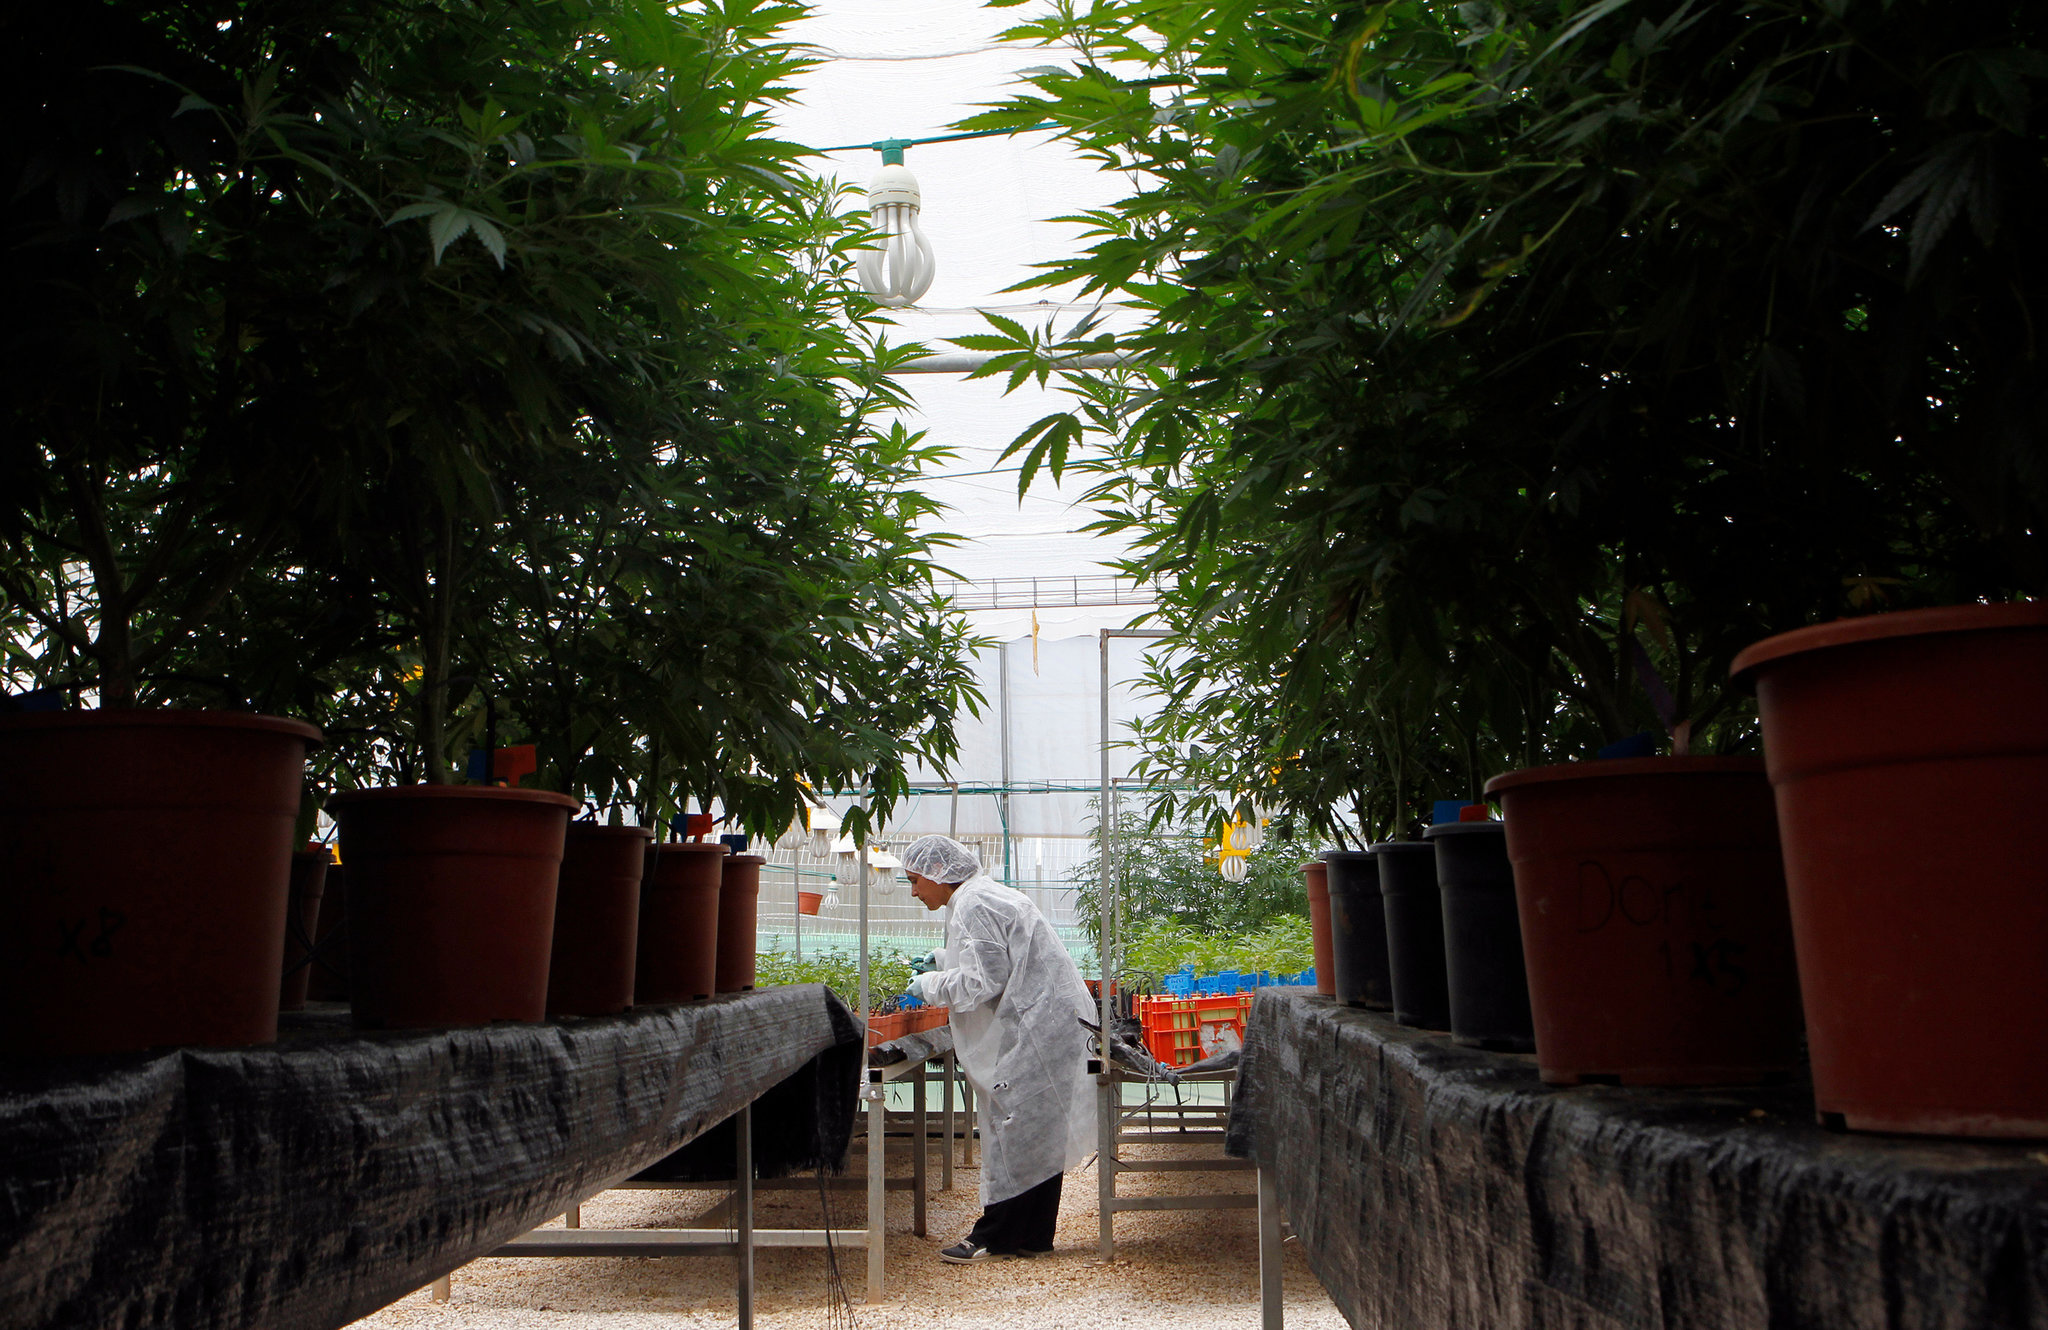 At a medical marijuana farm in Israel, a worker tends to the plants.